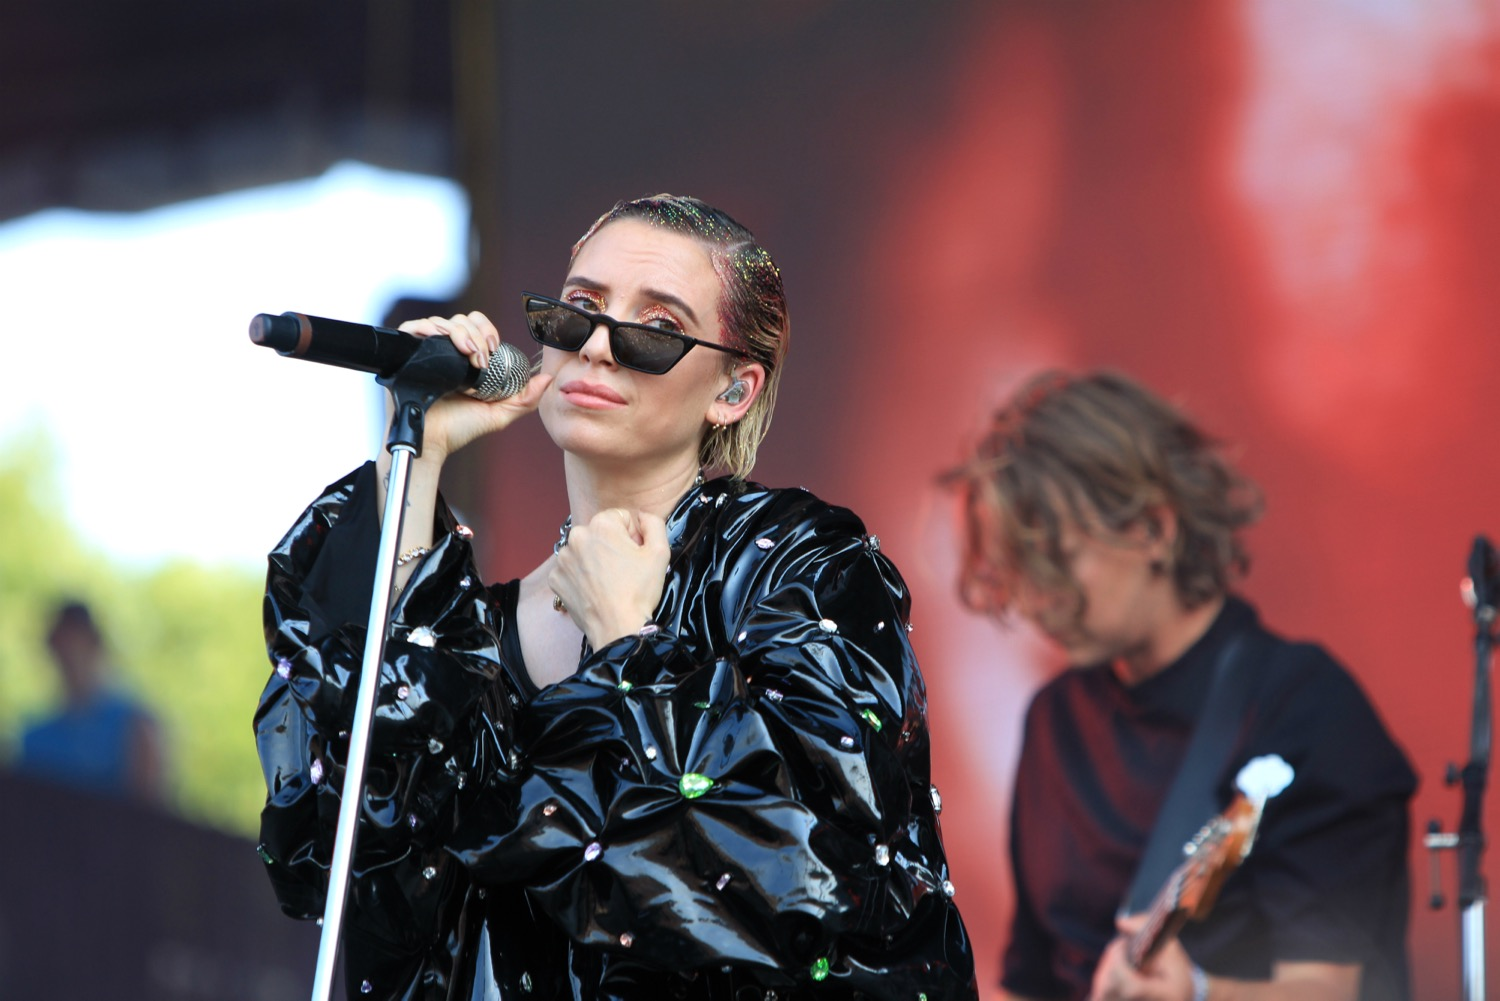 Lykke Li, Lollapalooza 2018, photo by Heather Kaplan